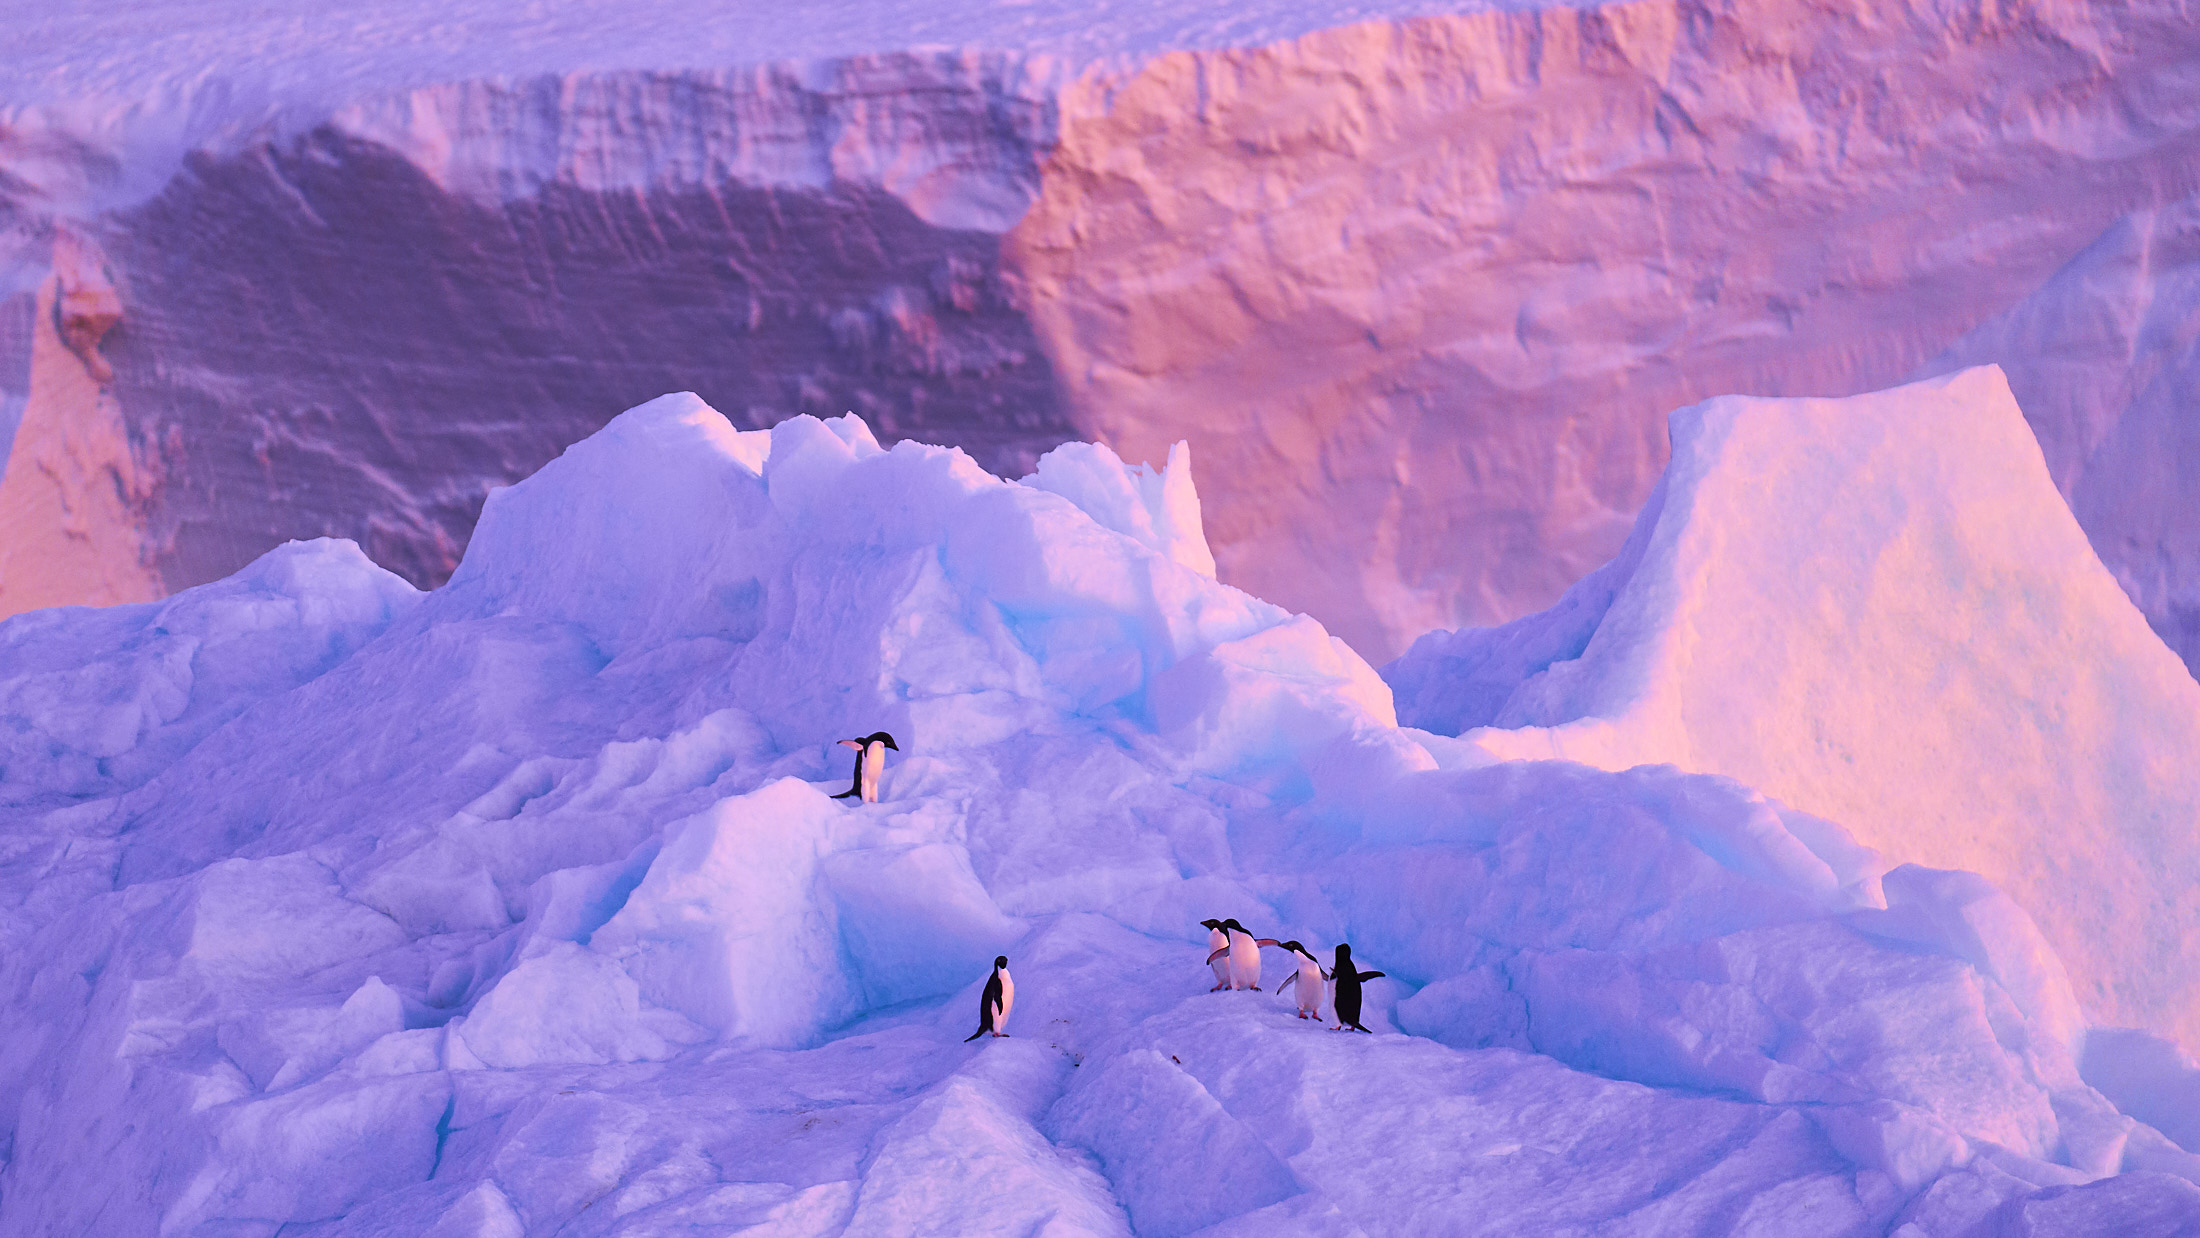 Linblad / National Geographic Expeditions   Journey into Antarctica   VIEW PROJECT